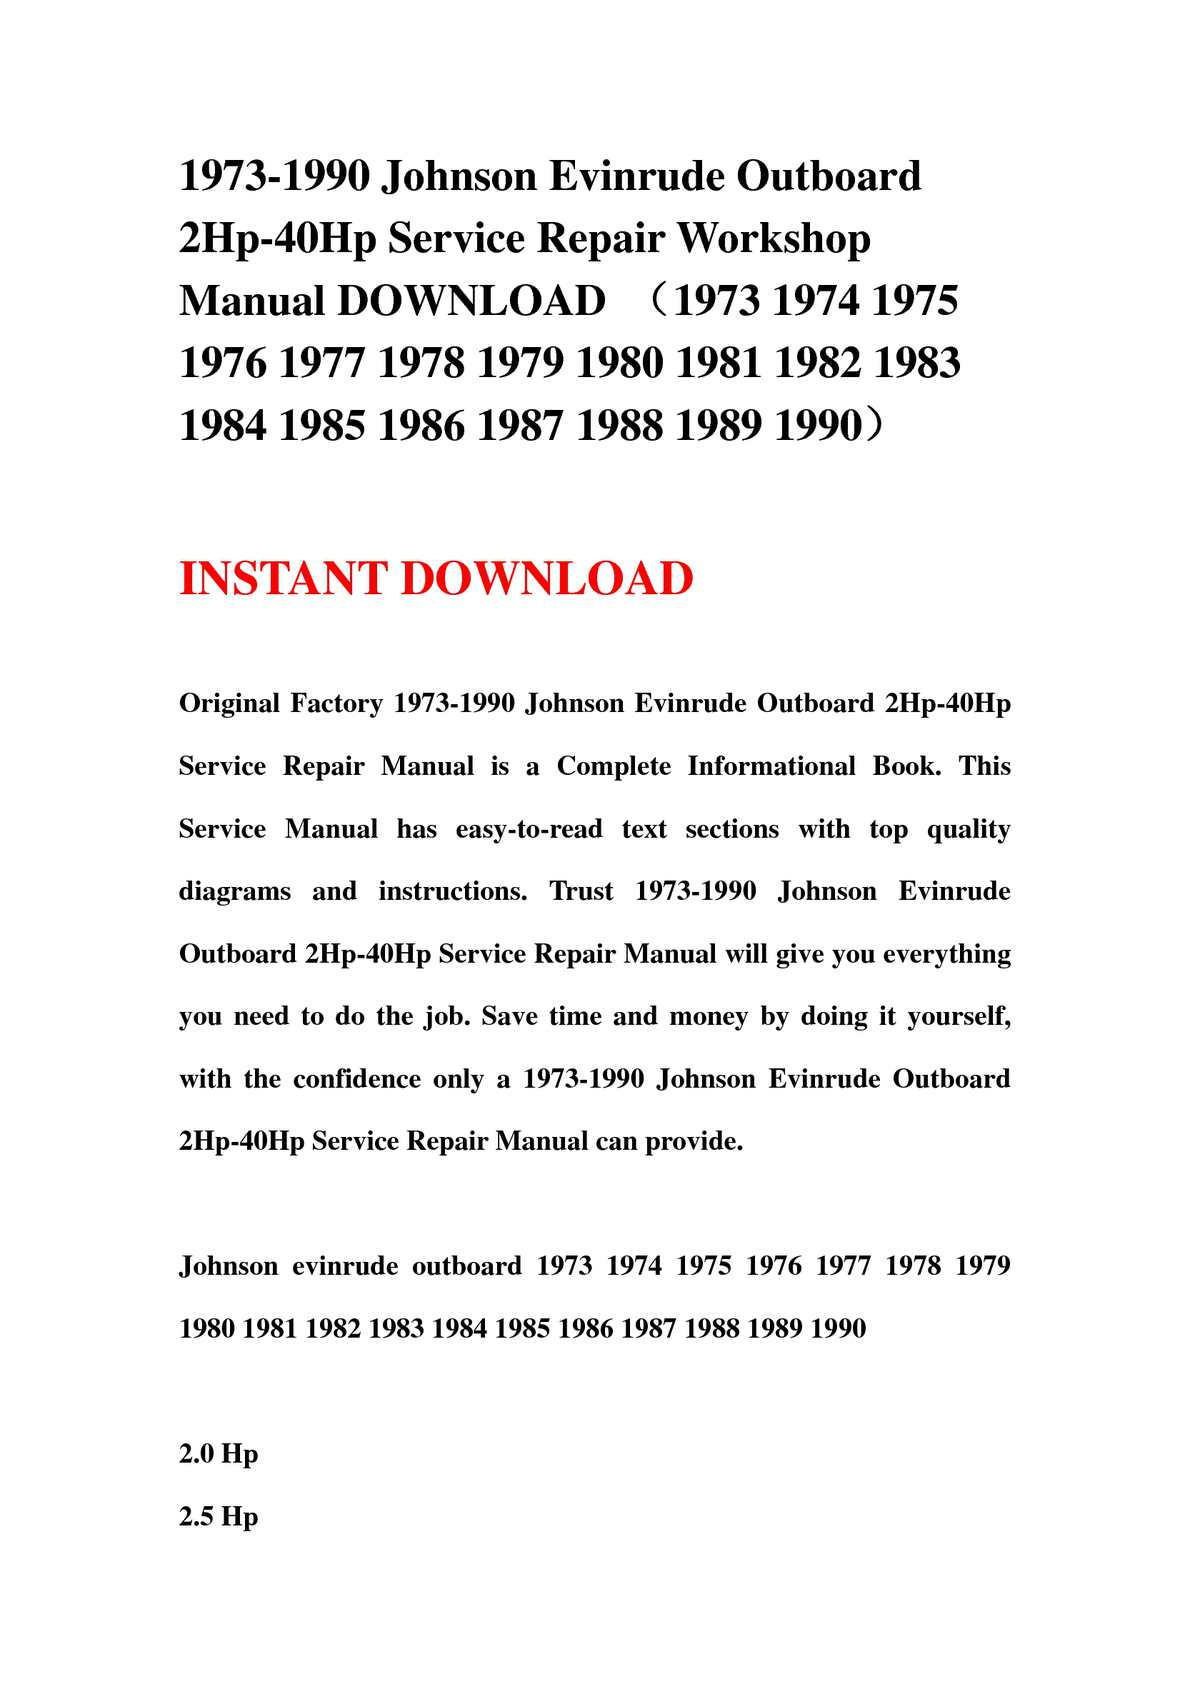 hight resolution of calam o 1973 1990 johnson evinrude outboard 2hp 40hp service repair workshop manual download 1973 1974 1975 1976 1977 1978 1979 1980 1981 1982 1983 1984